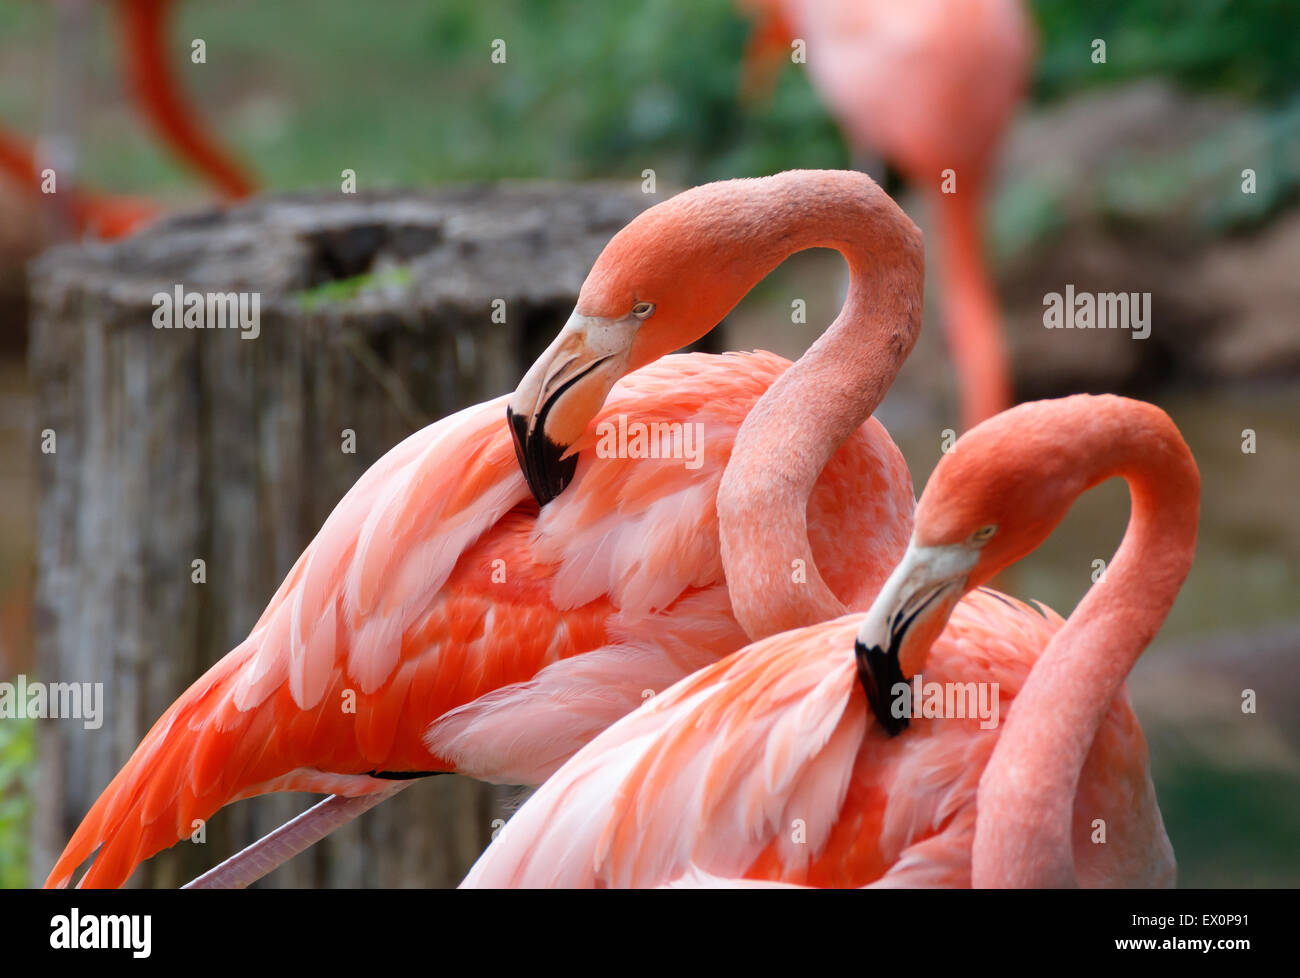 Two flamingos mirror each other in a zoo. - Stock Image